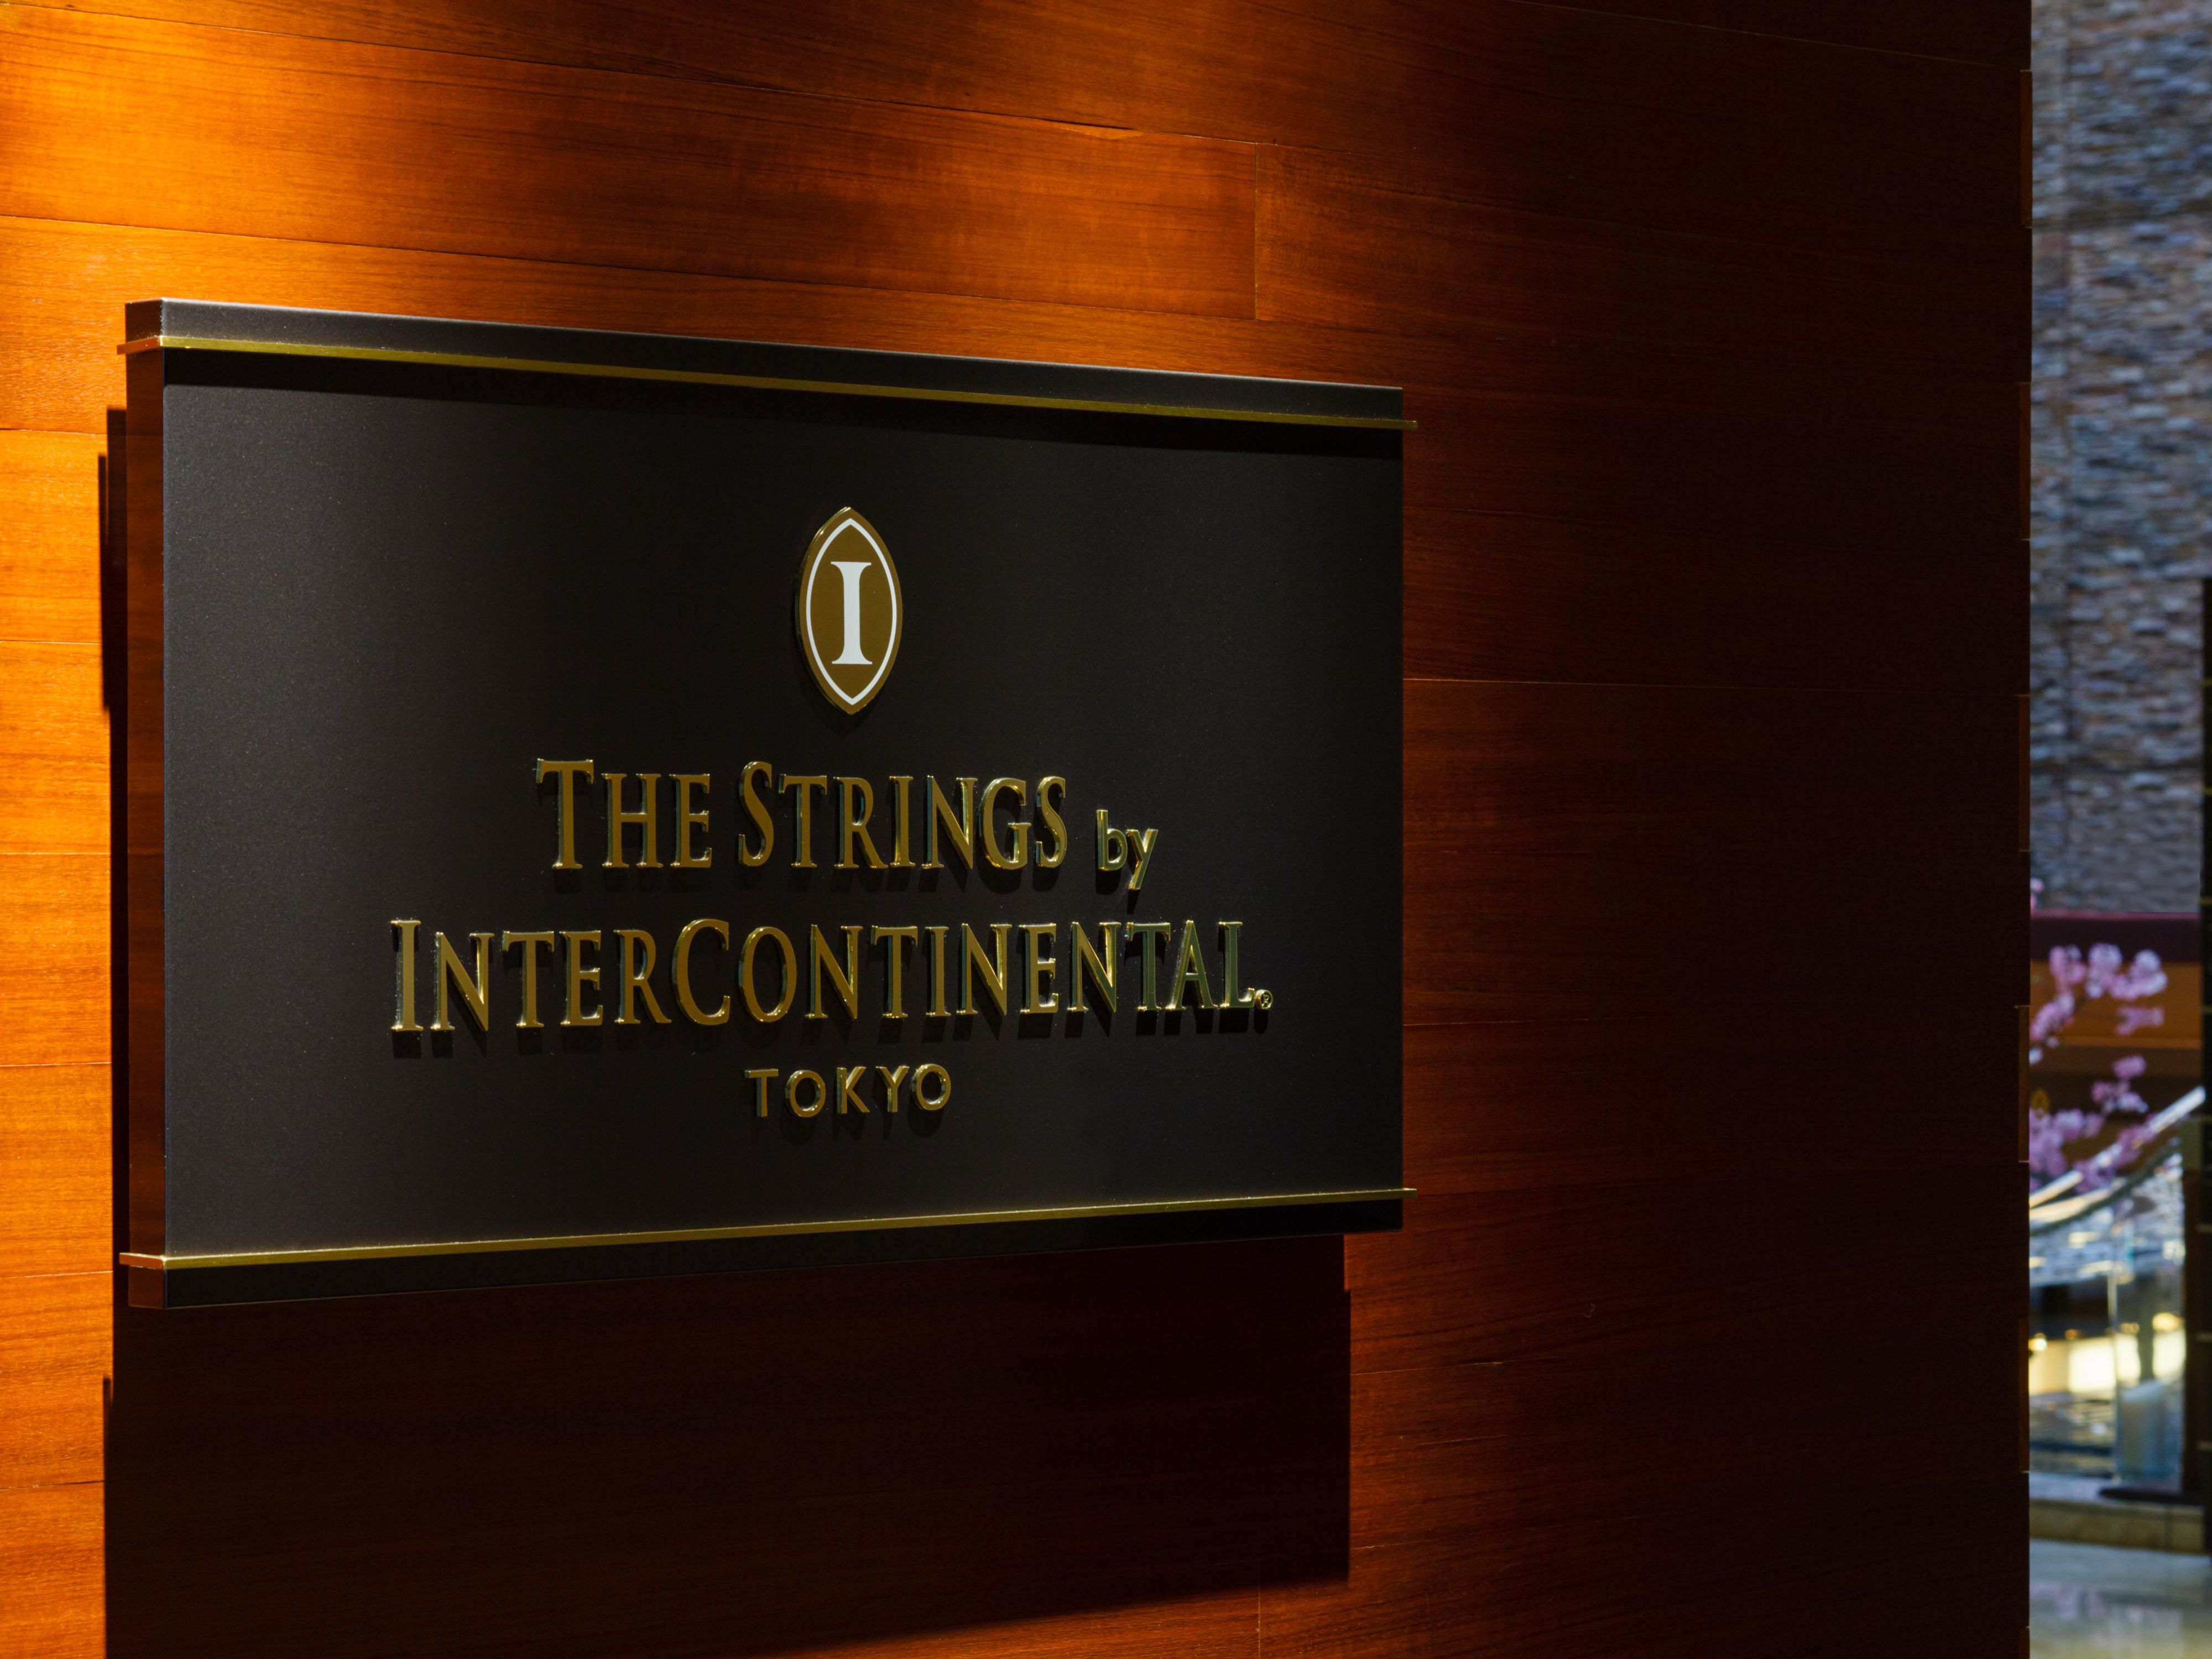 InterContinental ANA The Strings Tokyo